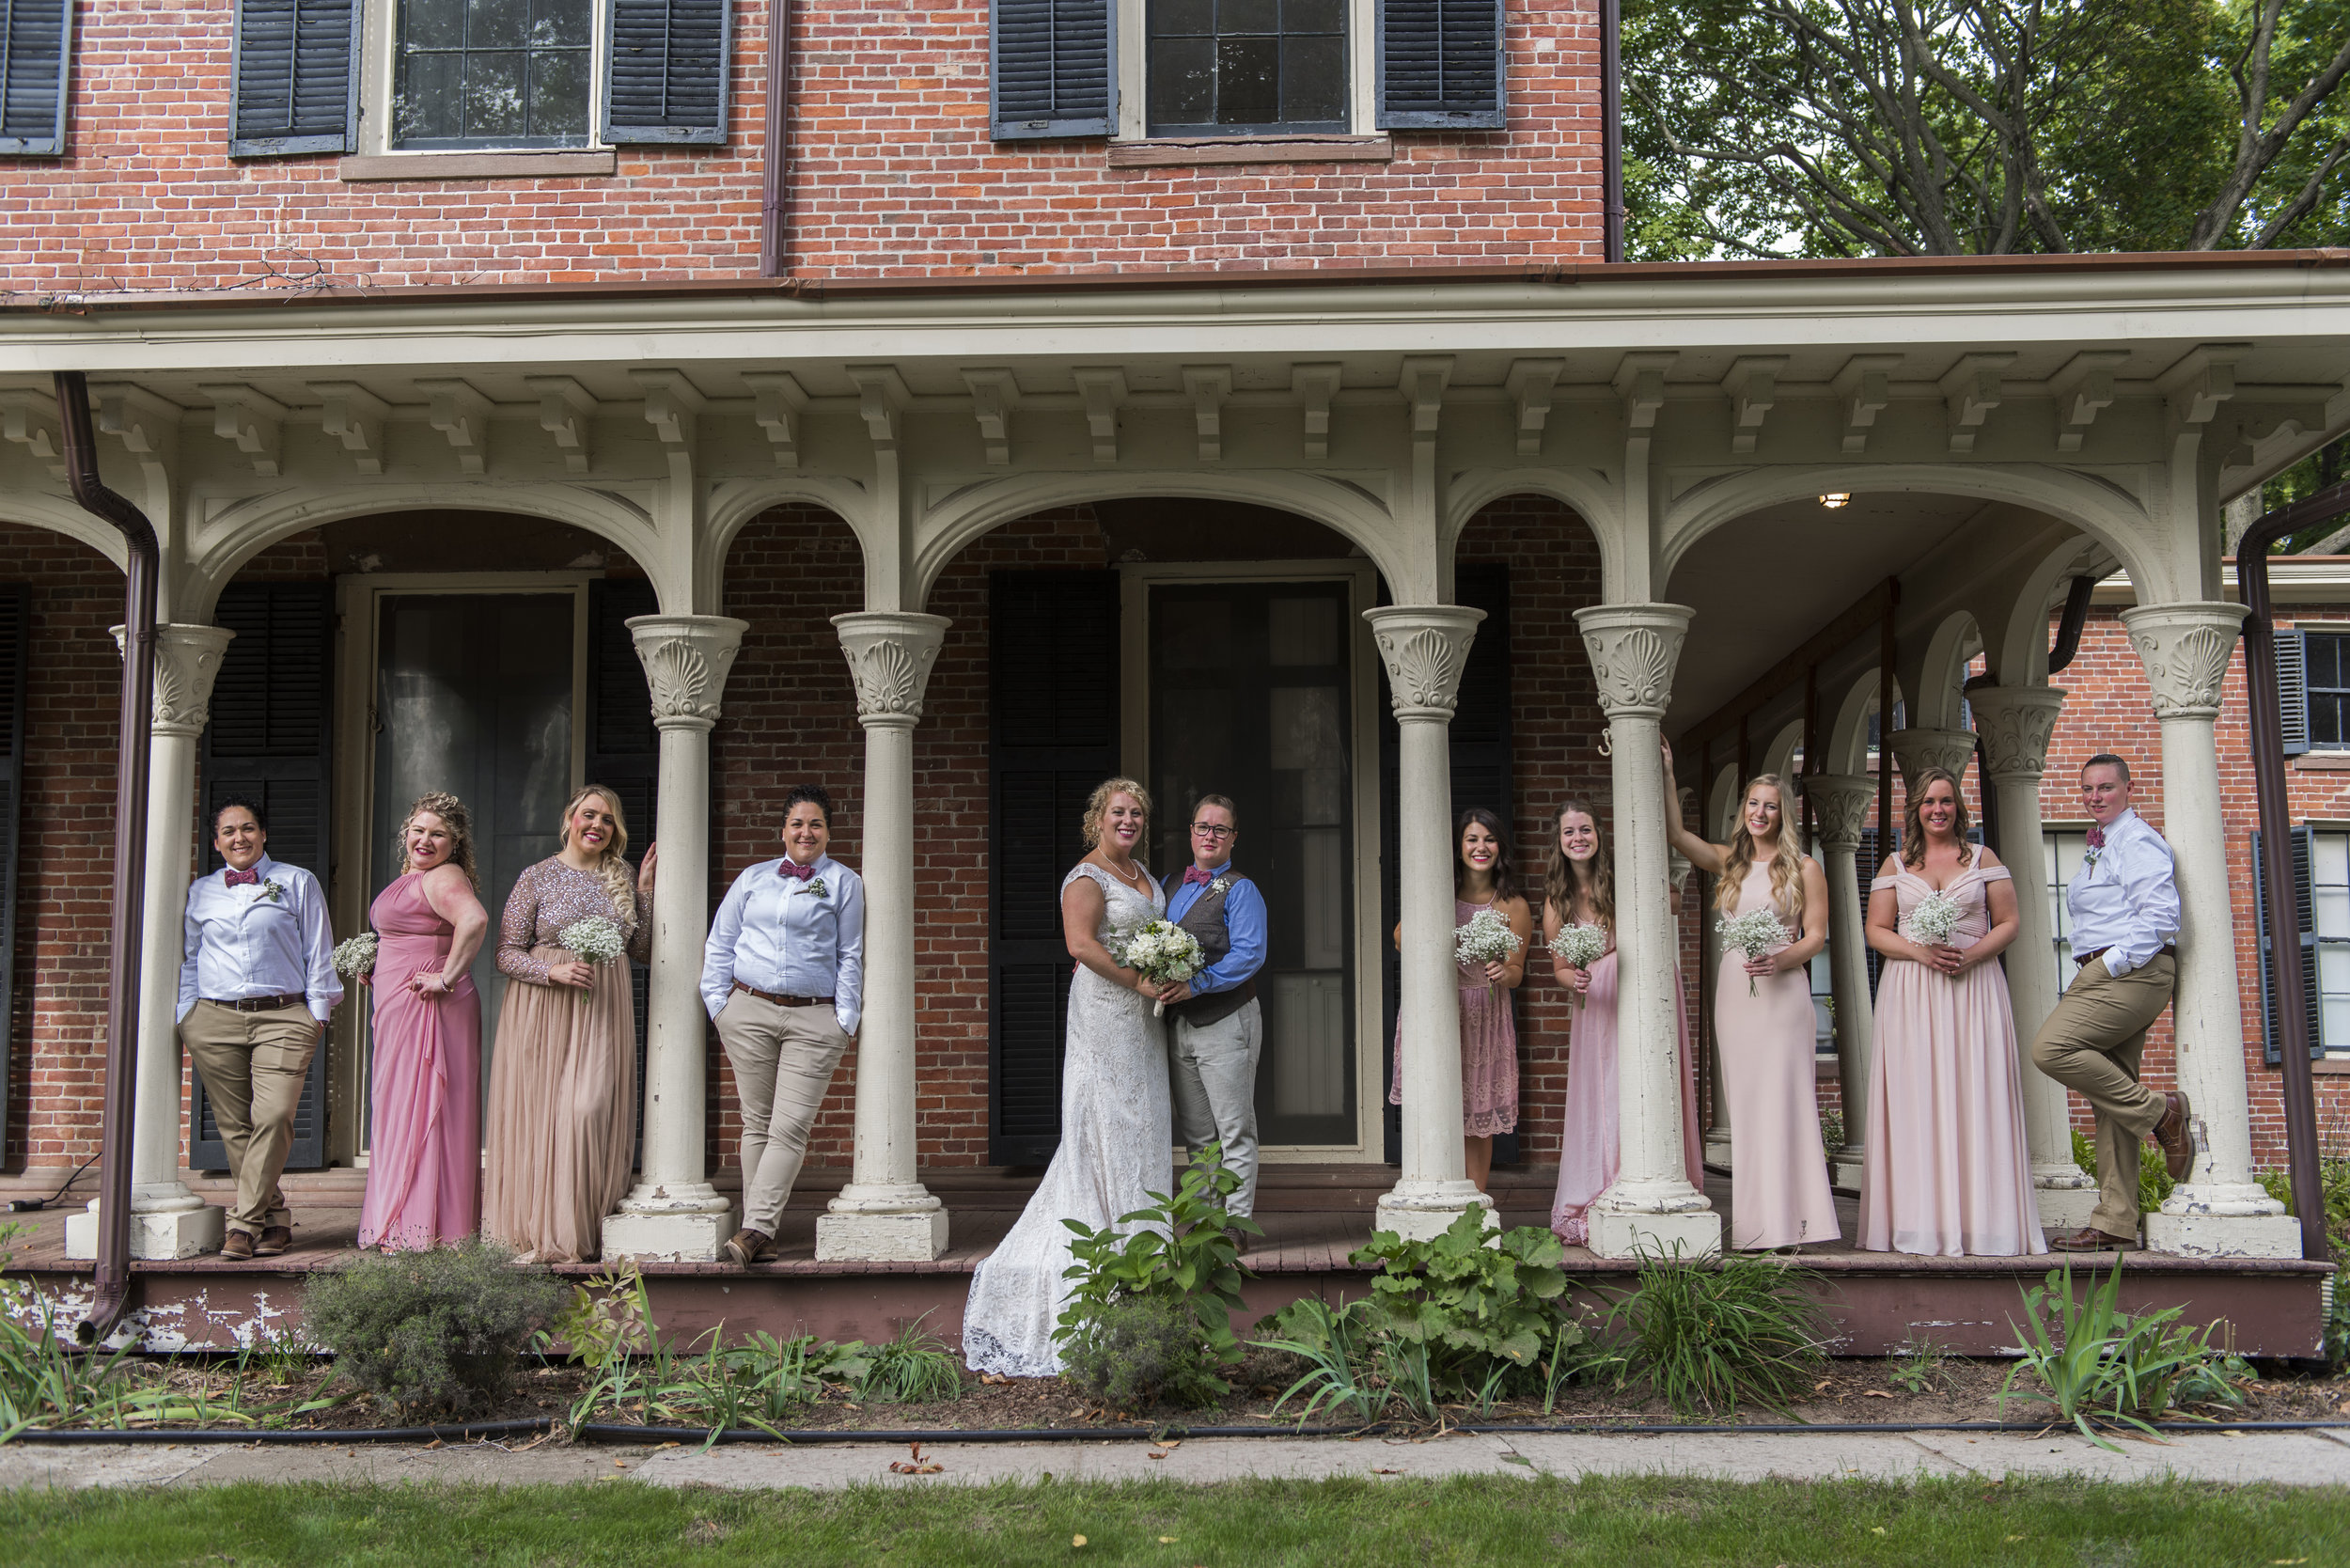 LGBT wedding-OldWethersfield-Connecticut-The Webb Barn-Wethersfield Historical Society-Bridal Party